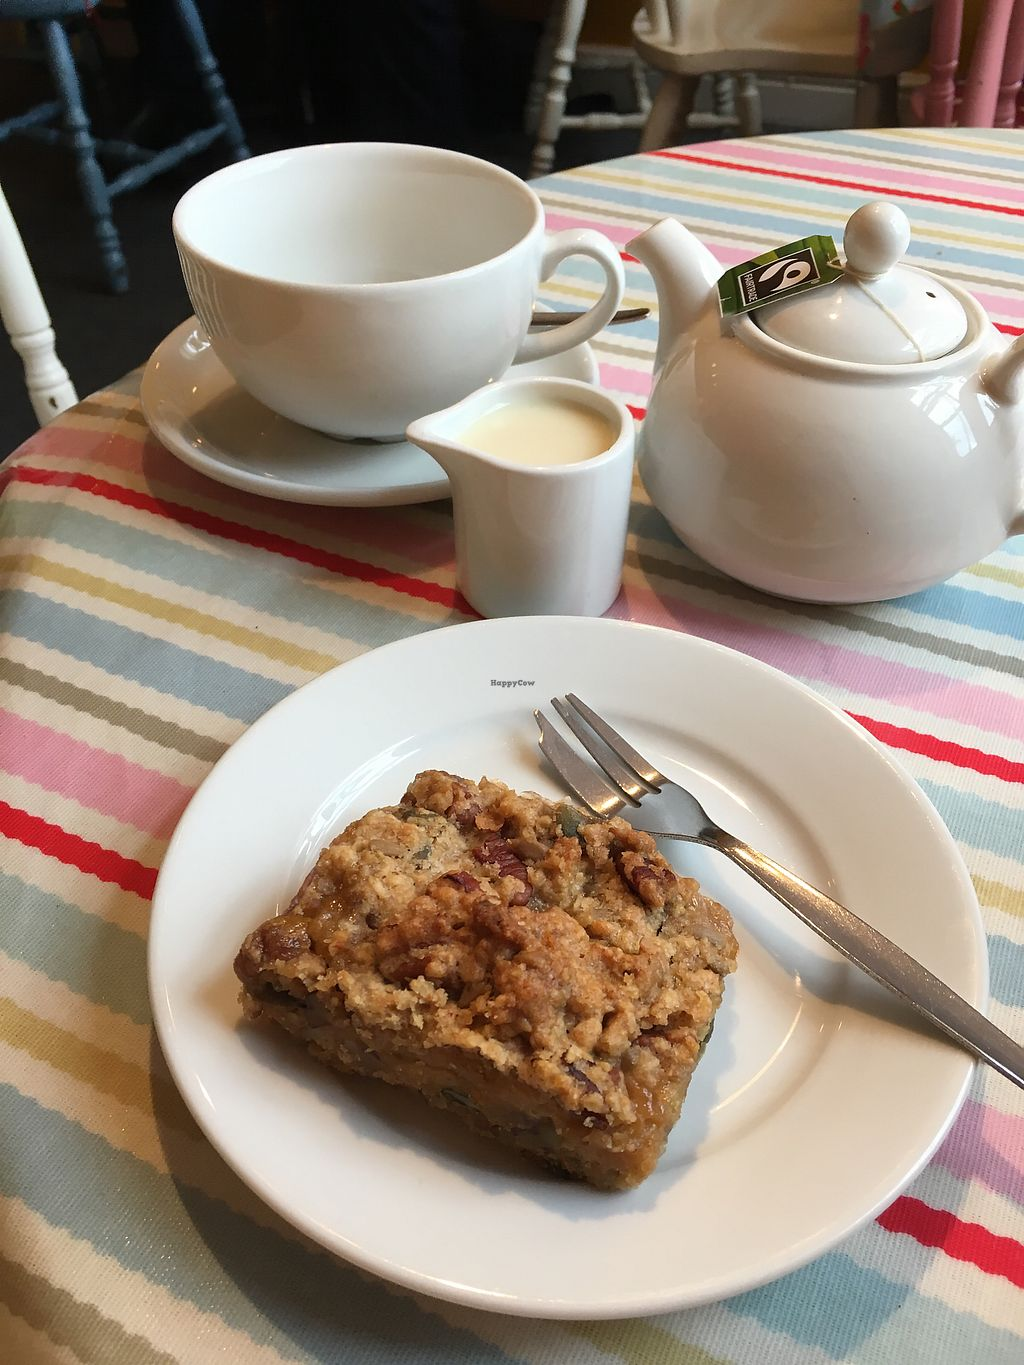 """Photo of CLOSED: Word of Mouth  by <a href=""""/members/profile/Spaghetti_monster"""">Spaghetti_monster</a> <br/>vegan plum and pecan slice and a pot of tea with soy milk <br/> August 18, 2017  - <a href='/contact/abuse/image/62924/293964'>Report</a>"""